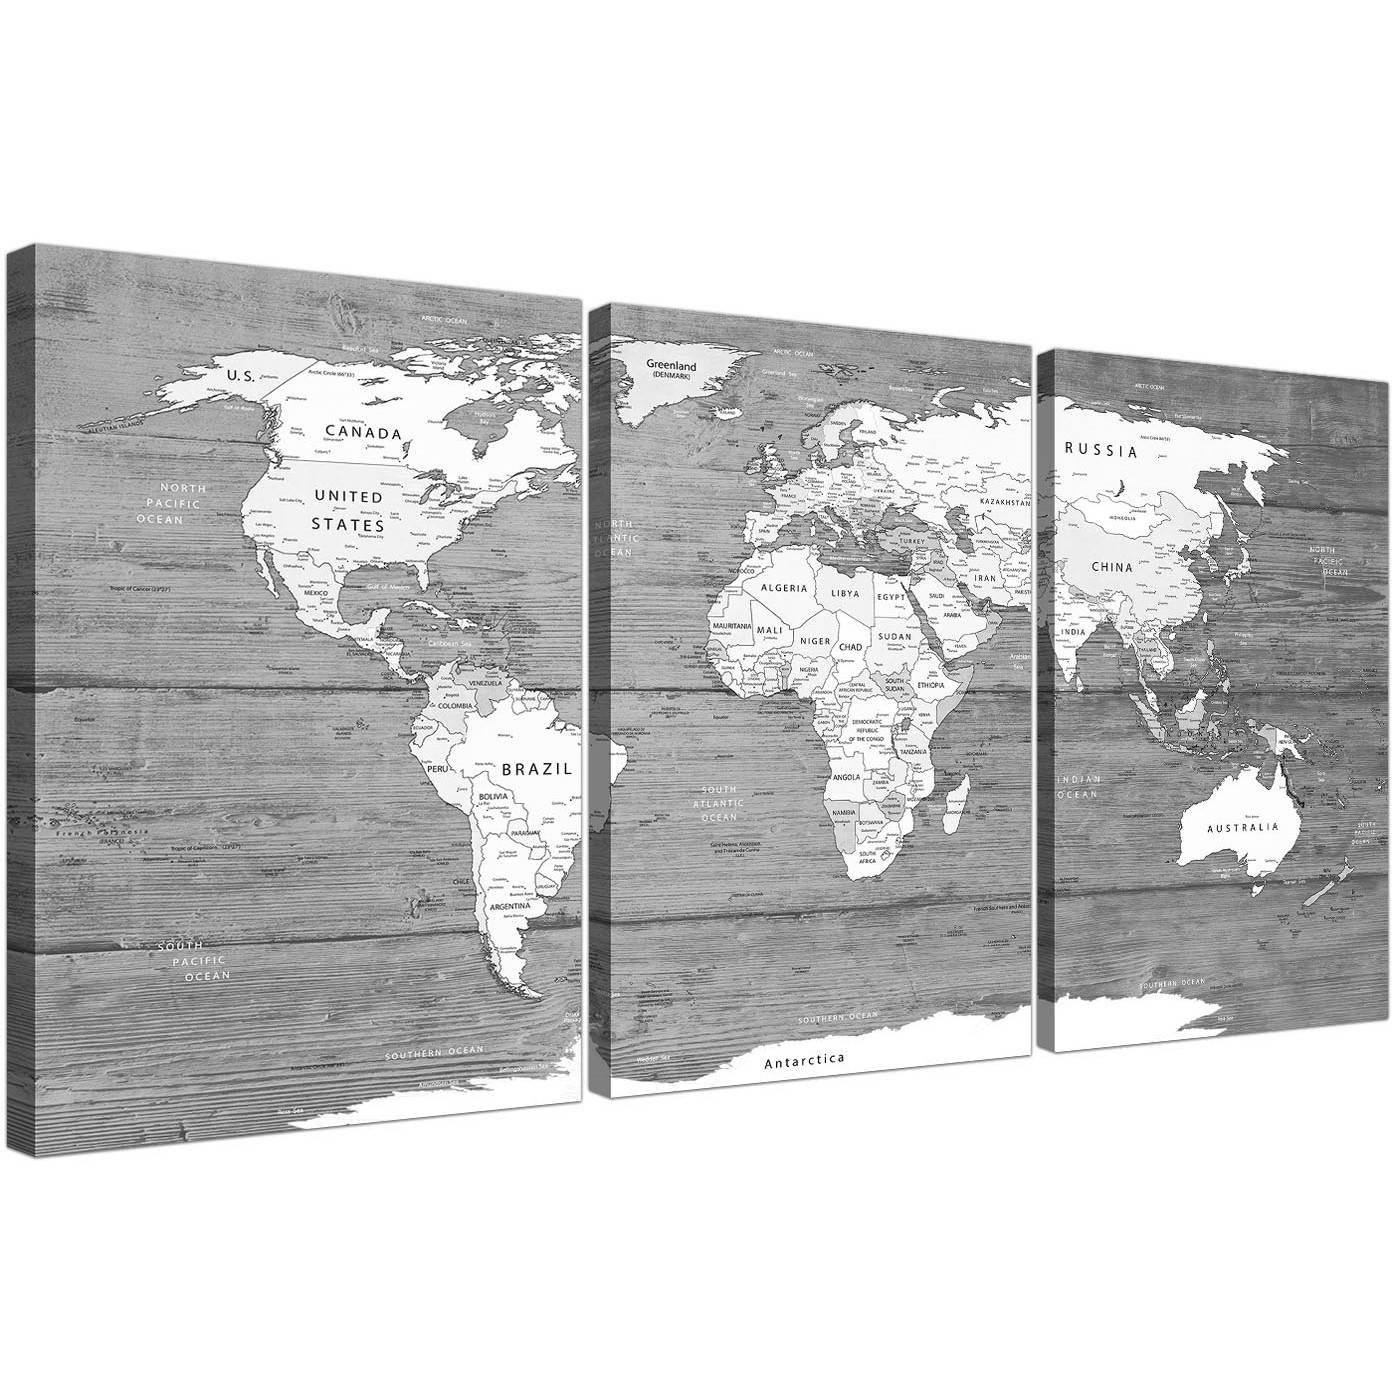 Large Black White Map Of World Atlas – Canvas Wall Art Print Inside Most Recent Atlas Wall Art (View 15 of 20)